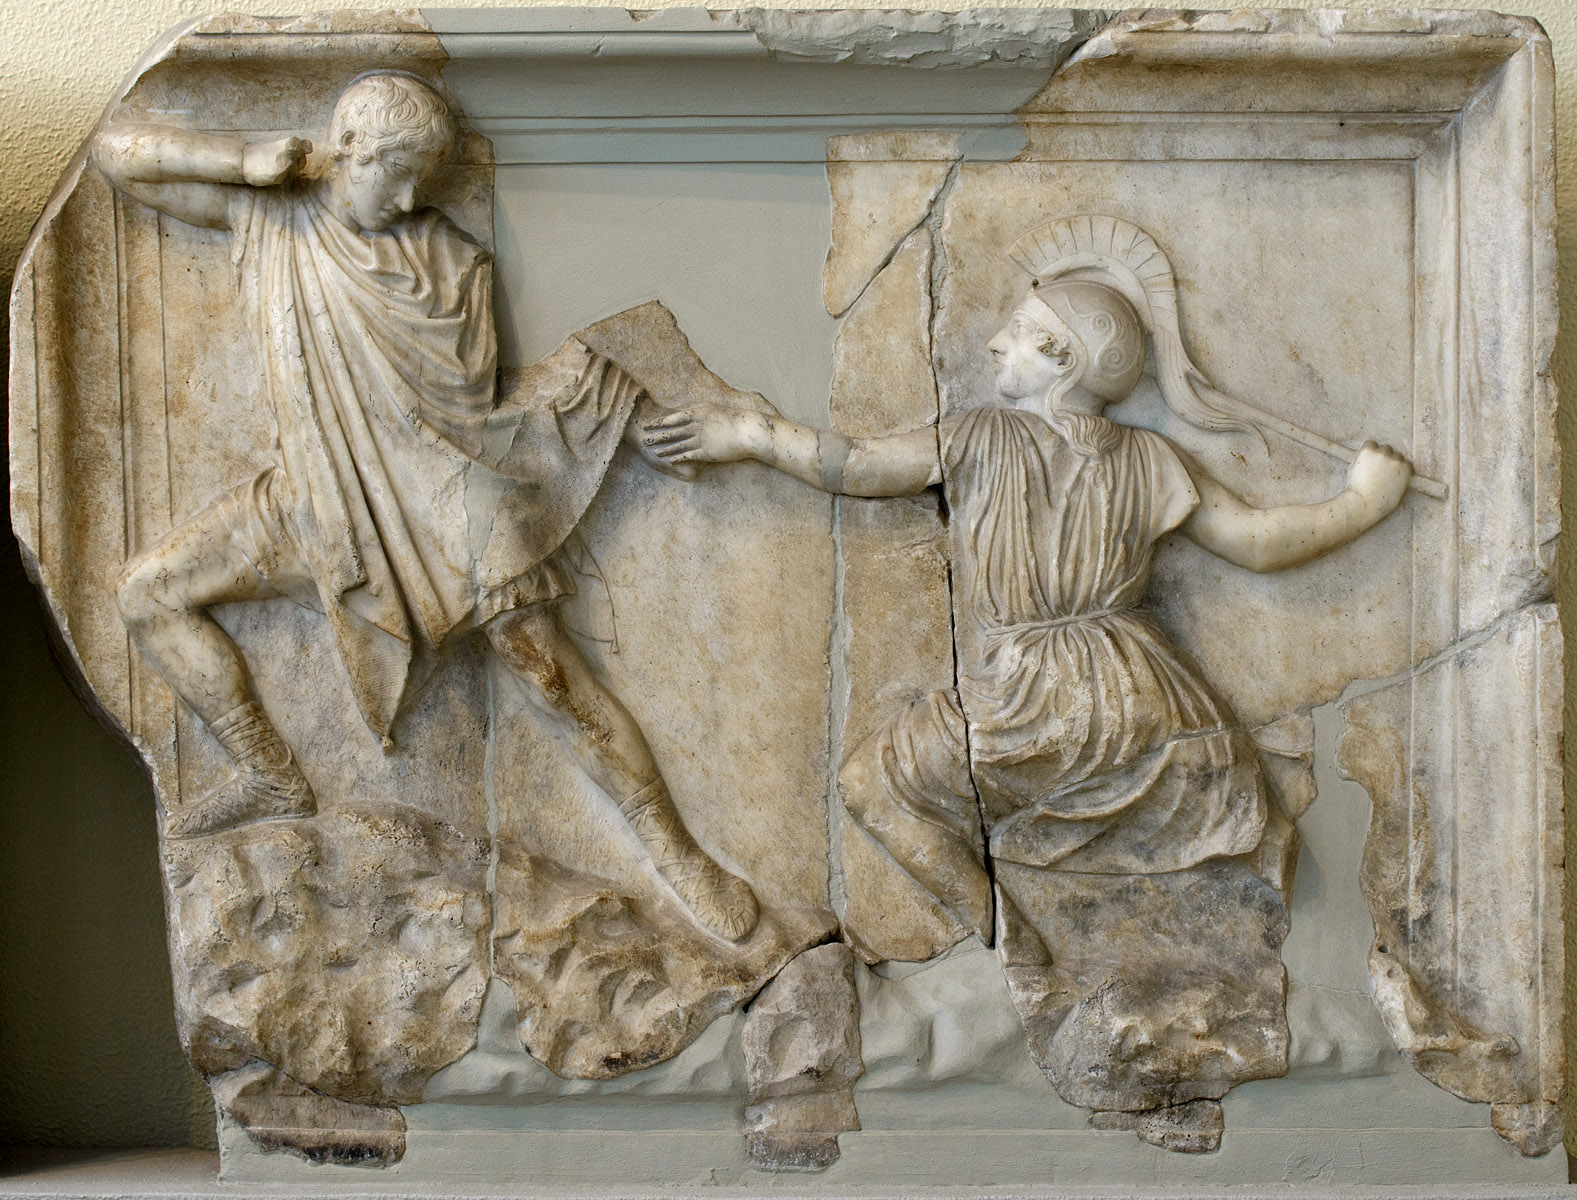 Greek fighting Amazon (scene of Amazonomachia). Marble. Neo-Attic relief panel. Mid-2nd cent. CE. Athens, Archaeological Museum of Piraeus